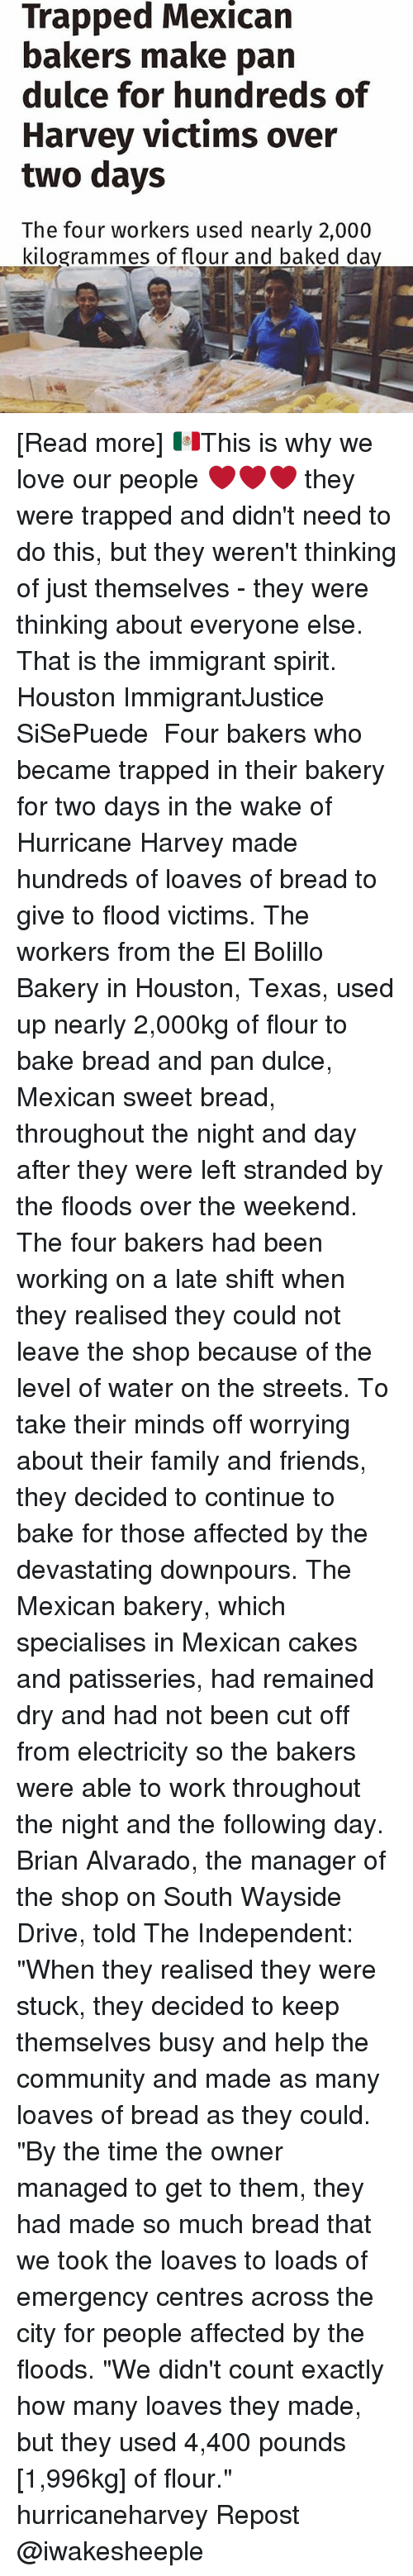 """Baked, Community, and Family: Trapped Mexican  bakers make pan  dulce for hundreds of  Harvey victims over  two days  The four workers used nearly 2,000  kilogrammes of flour and baked da [Read more] 🇲🇽This is why we love our people ❤❤❤ they were trapped and didn't need to do this, but they weren't thinking of just themselves - they were thinking about everyone else. That is the immigrant spirit. Houston ImmigrantJustice SiSePuede ・・・ Four bakers who became trapped in their bakery for two days in the wake of Hurricane Harvey made hundreds of loaves of bread to give to flood victims. The workers from the El Bolillo Bakery in Houston, Texas, used up nearly 2,000kg of flour to bake bread and pan dulce, Mexican sweet bread, throughout the night and day after they were left stranded by the floods over the weekend. The four bakers had been working on a late shift when they realised they could not leave the shop because of the level of water on the streets. To take their minds off worrying about their family and friends, they decided to continue to bake for those affected by the devastating downpours. The Mexican bakery, which specialises in Mexican cakes and patisseries, had remained dry and had not been cut off from electricity so the bakers were able to work throughout the night and the following day. Brian Alvarado, the manager of the shop on South Wayside Drive, told The Independent: """"When they realised they were stuck, they decided to keep themselves busy and help the community and made as many loaves of bread as they could. """"By the time the owner managed to get to them, they had made so much bread that we took the loaves to loads of emergency centres across the city for people affected by the floods. """"We didn't count exactly how many loaves they made, but they used 4,400 pounds [1,996kg] of flour."""" hurricaneharvey Repost @iwakesheeple"""